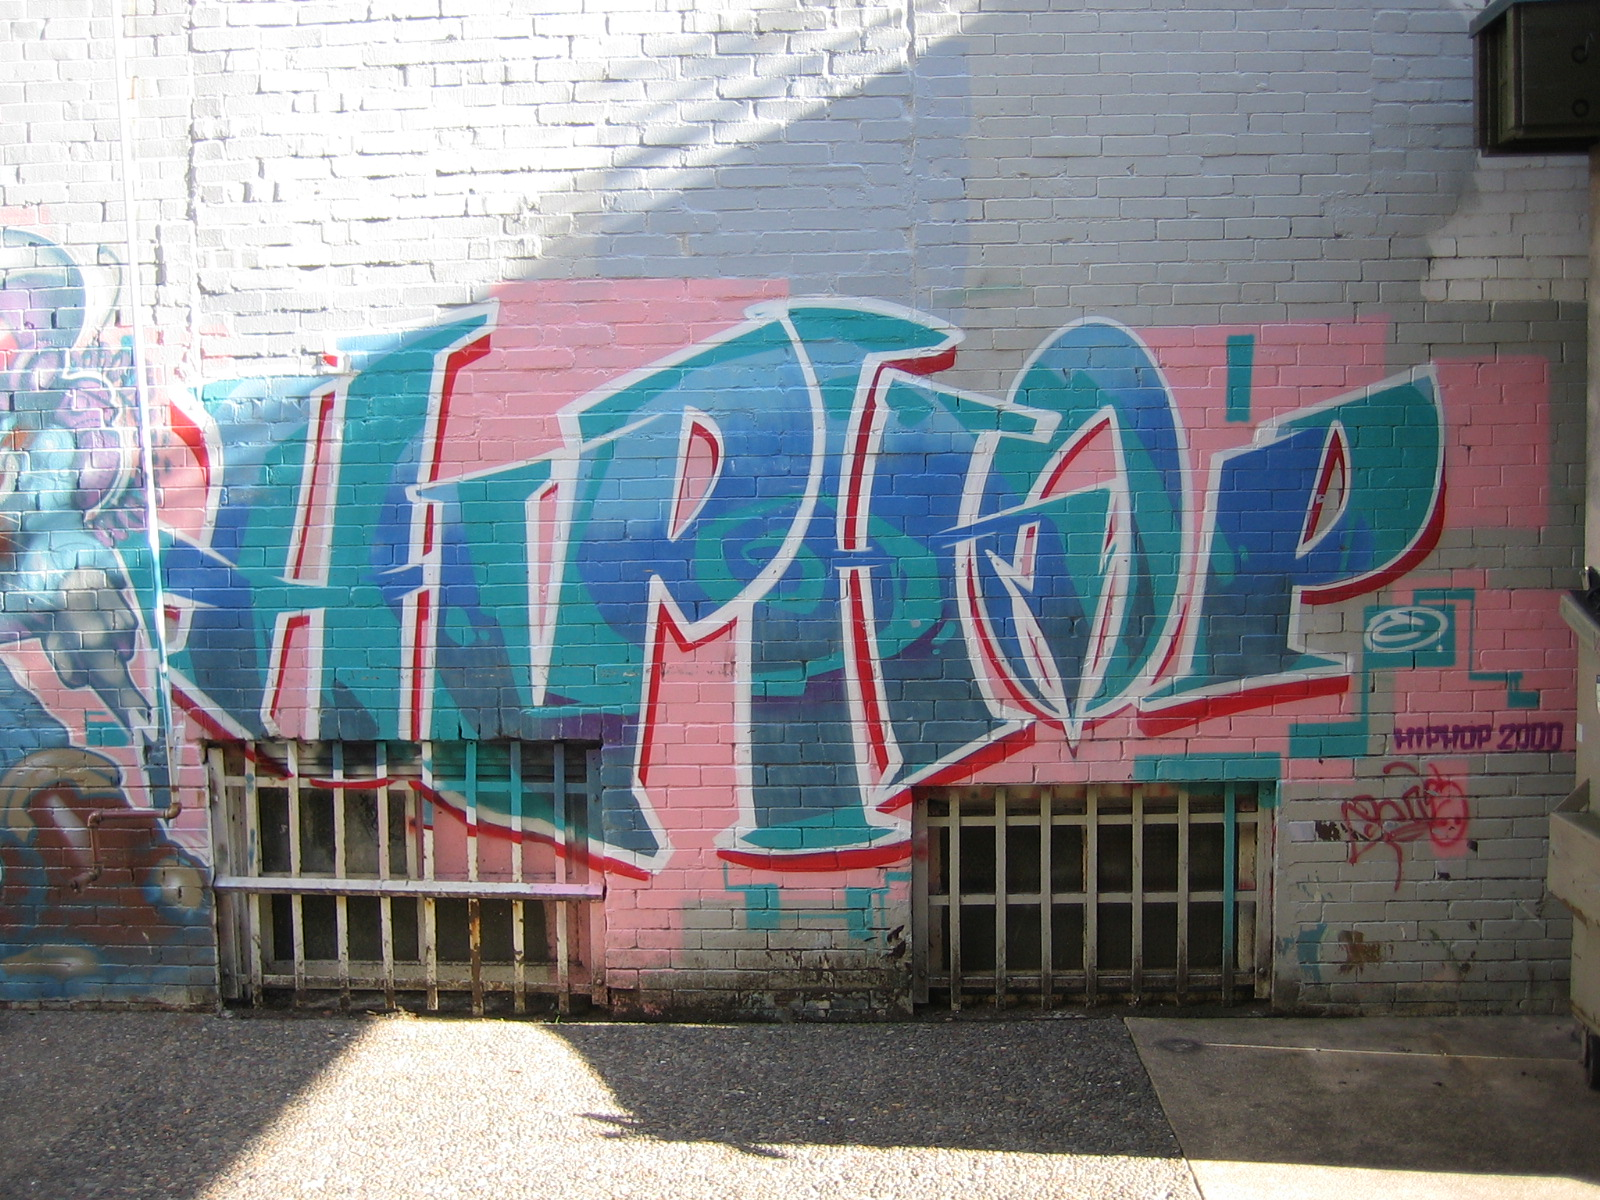 the history ideology and various sub genres of hip hop According to playwright and hip-hop fan danny hoch, hip-hop is the future of language and culture in the multicultural society it crosses all lines of color, race, economics, nationality, and gender, and hip-hop still has something to say (p.